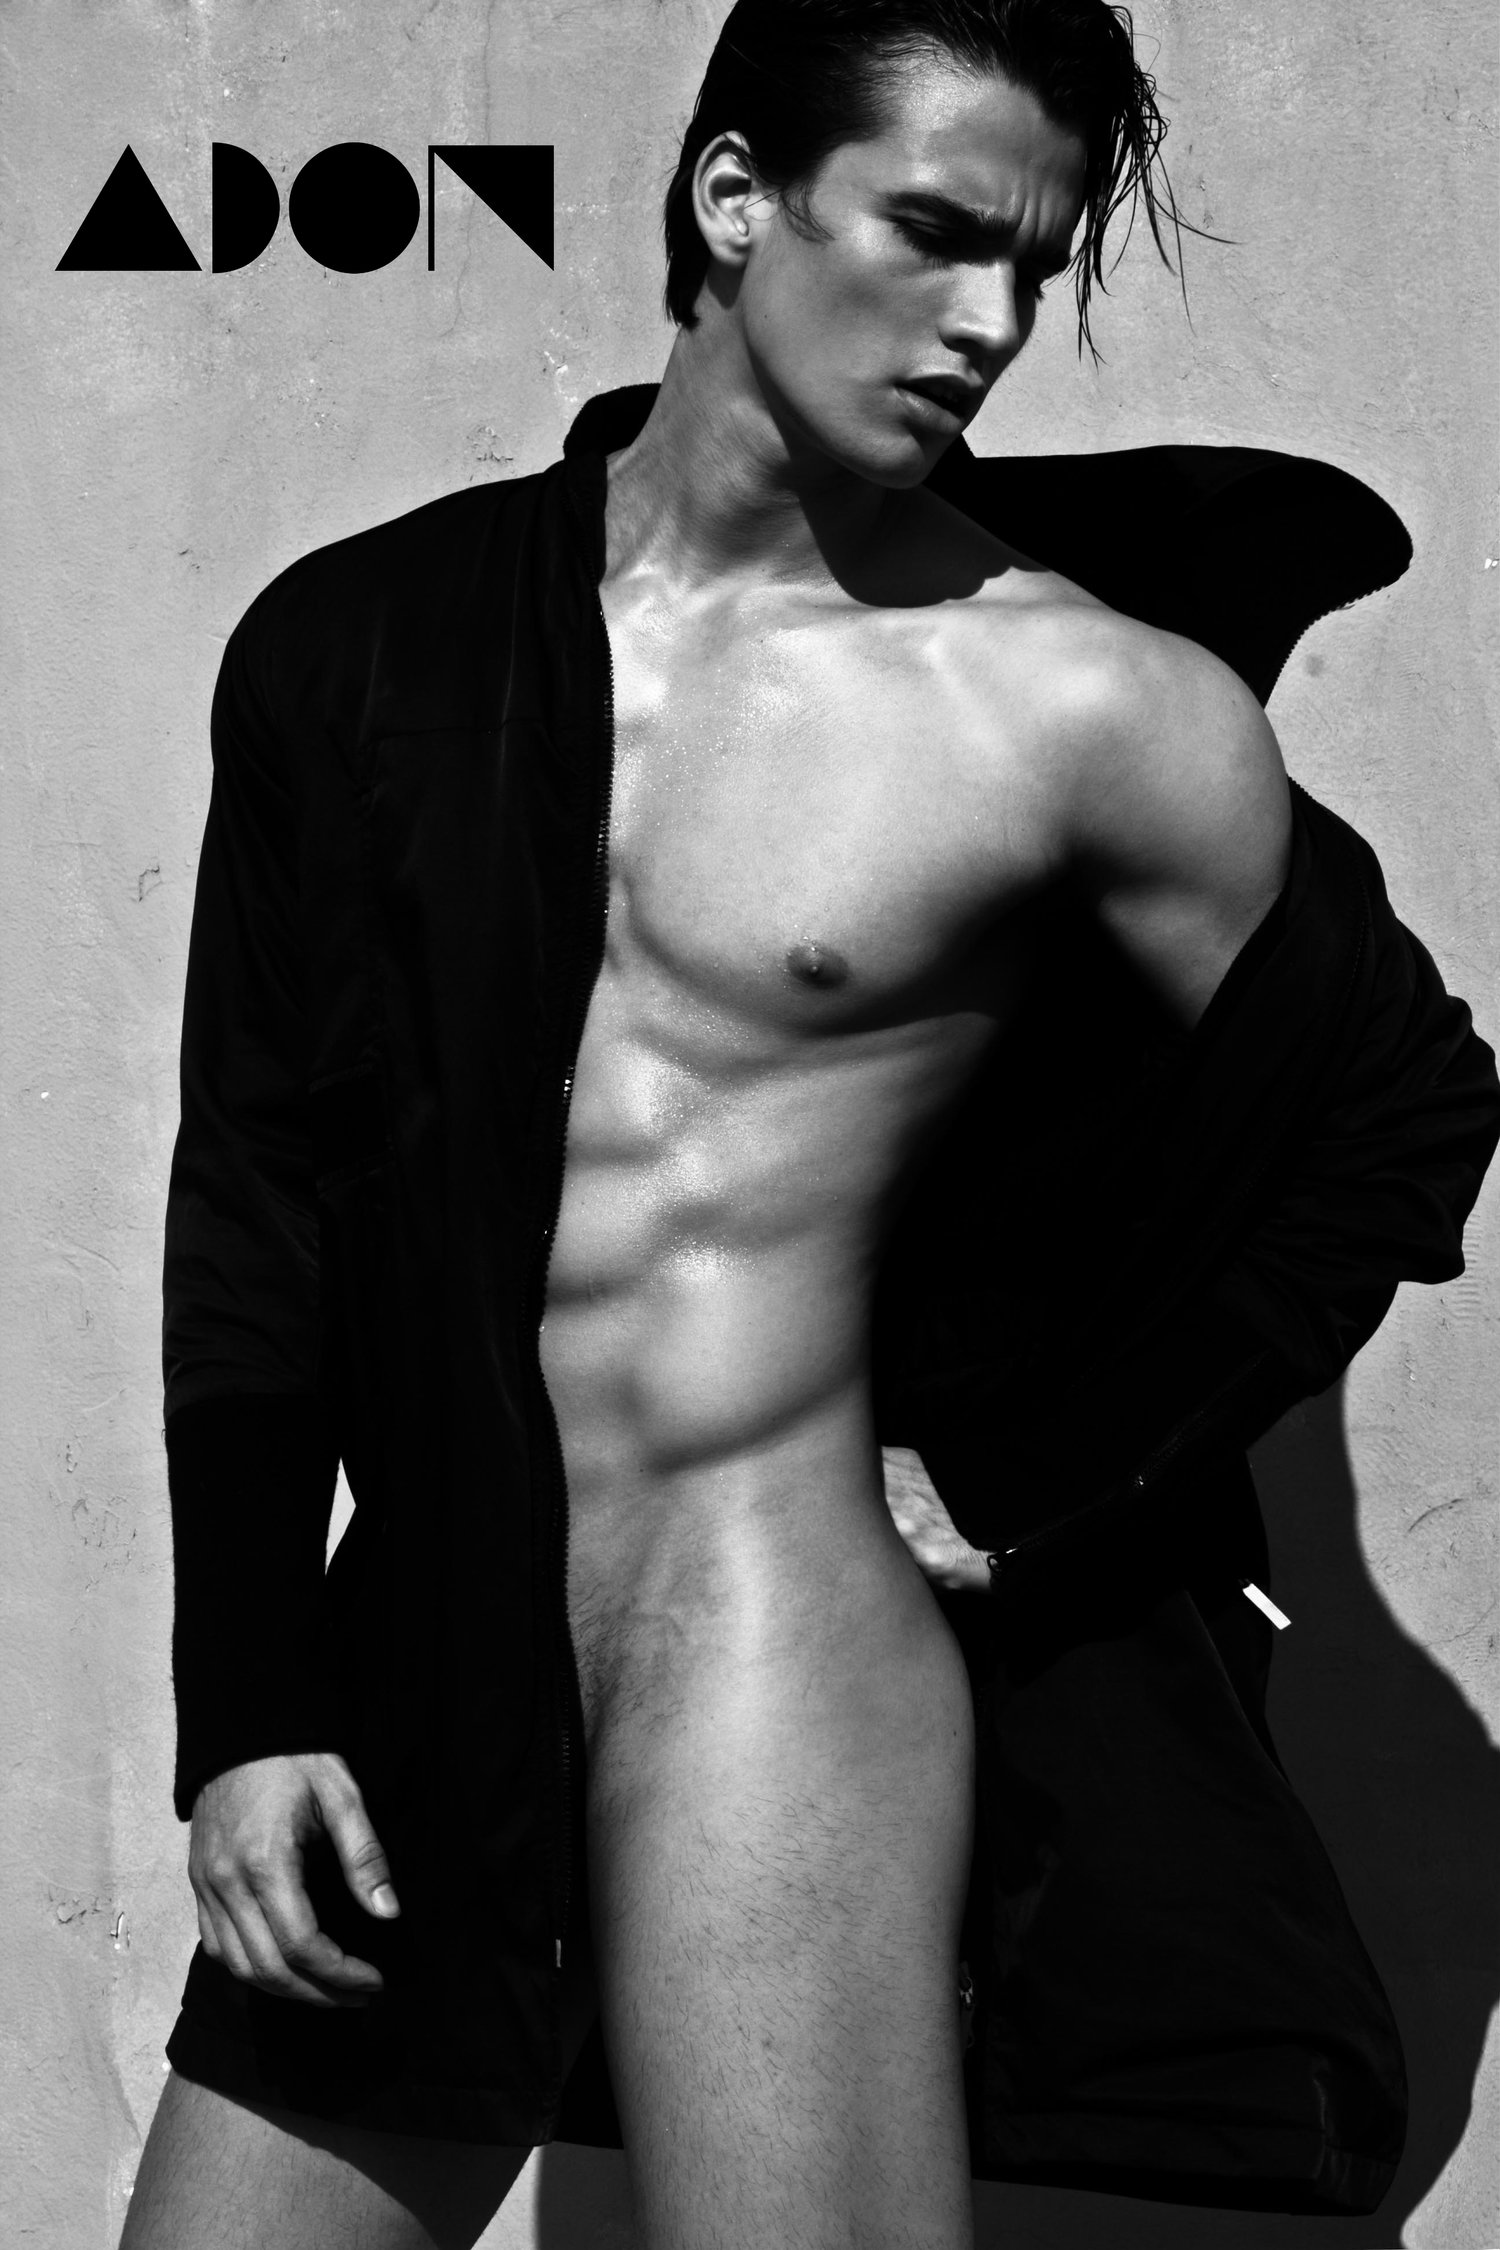 Adon Exclusive: Model Hans Weiser By Xram Ragde